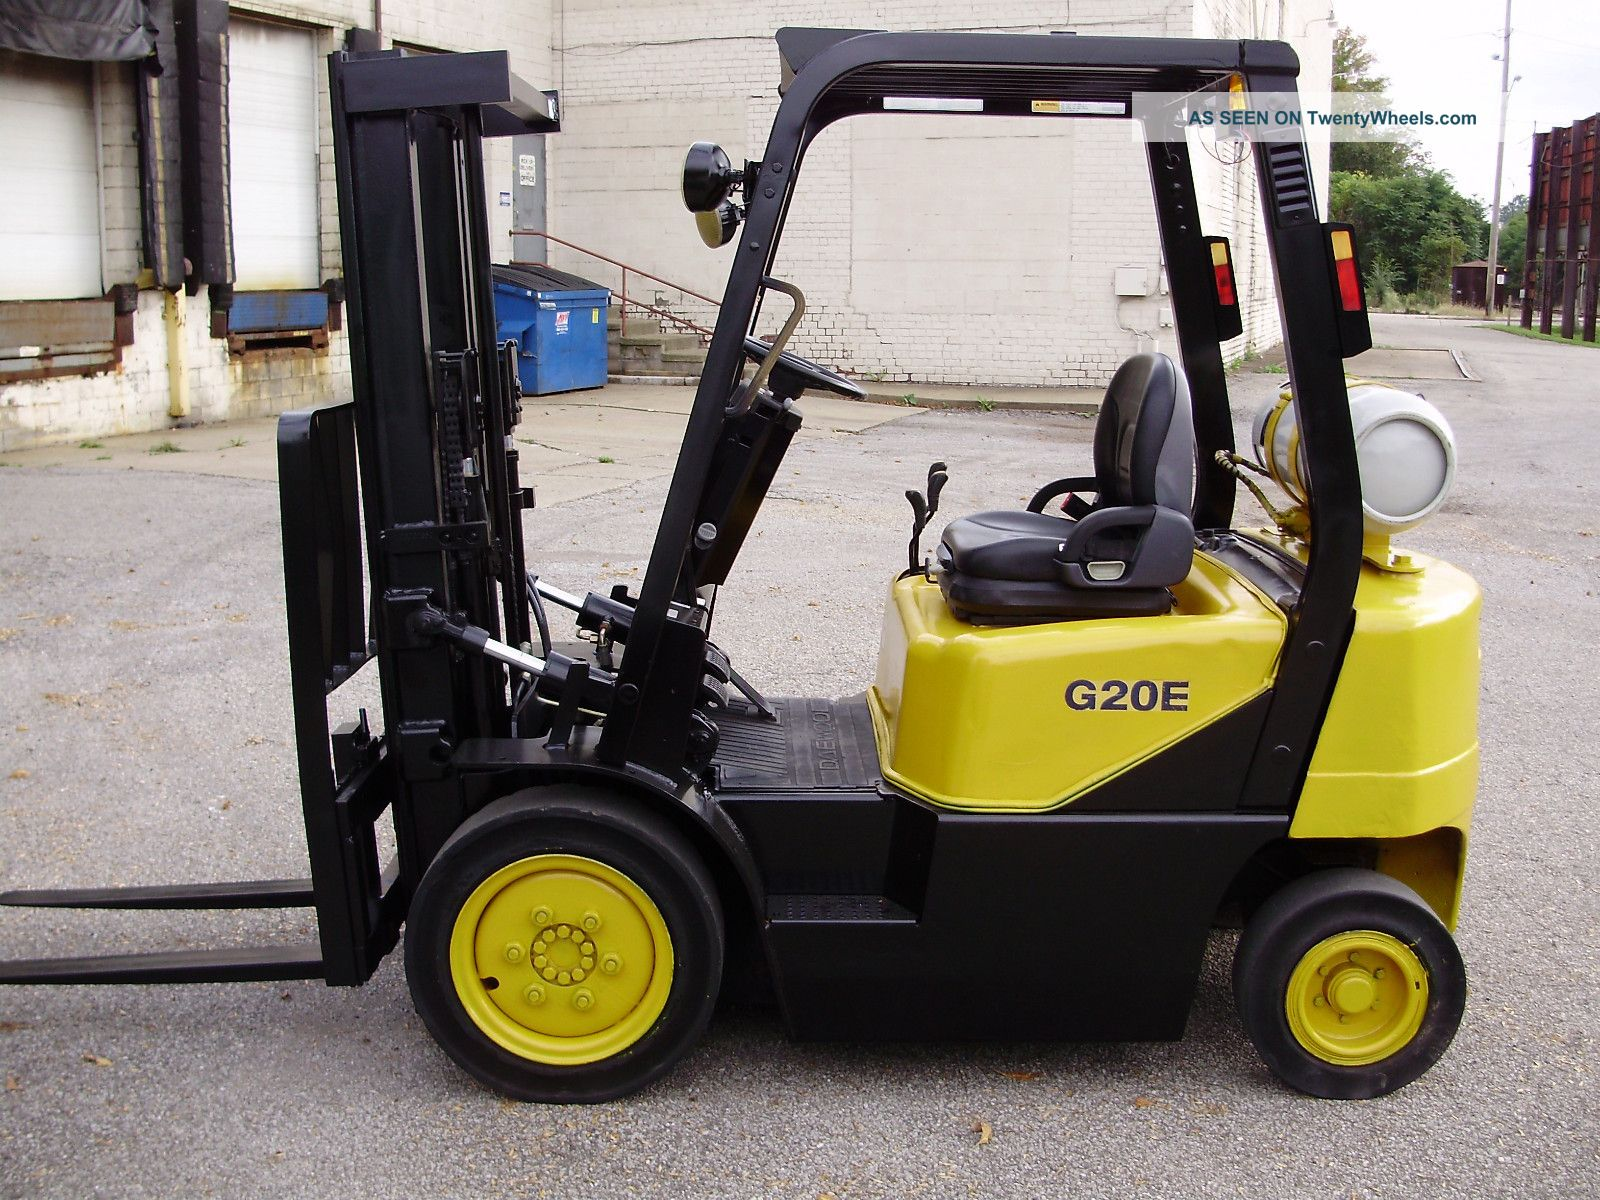 Forklift Daewoo Manual: Daewoo g e forklift no reserve auction on